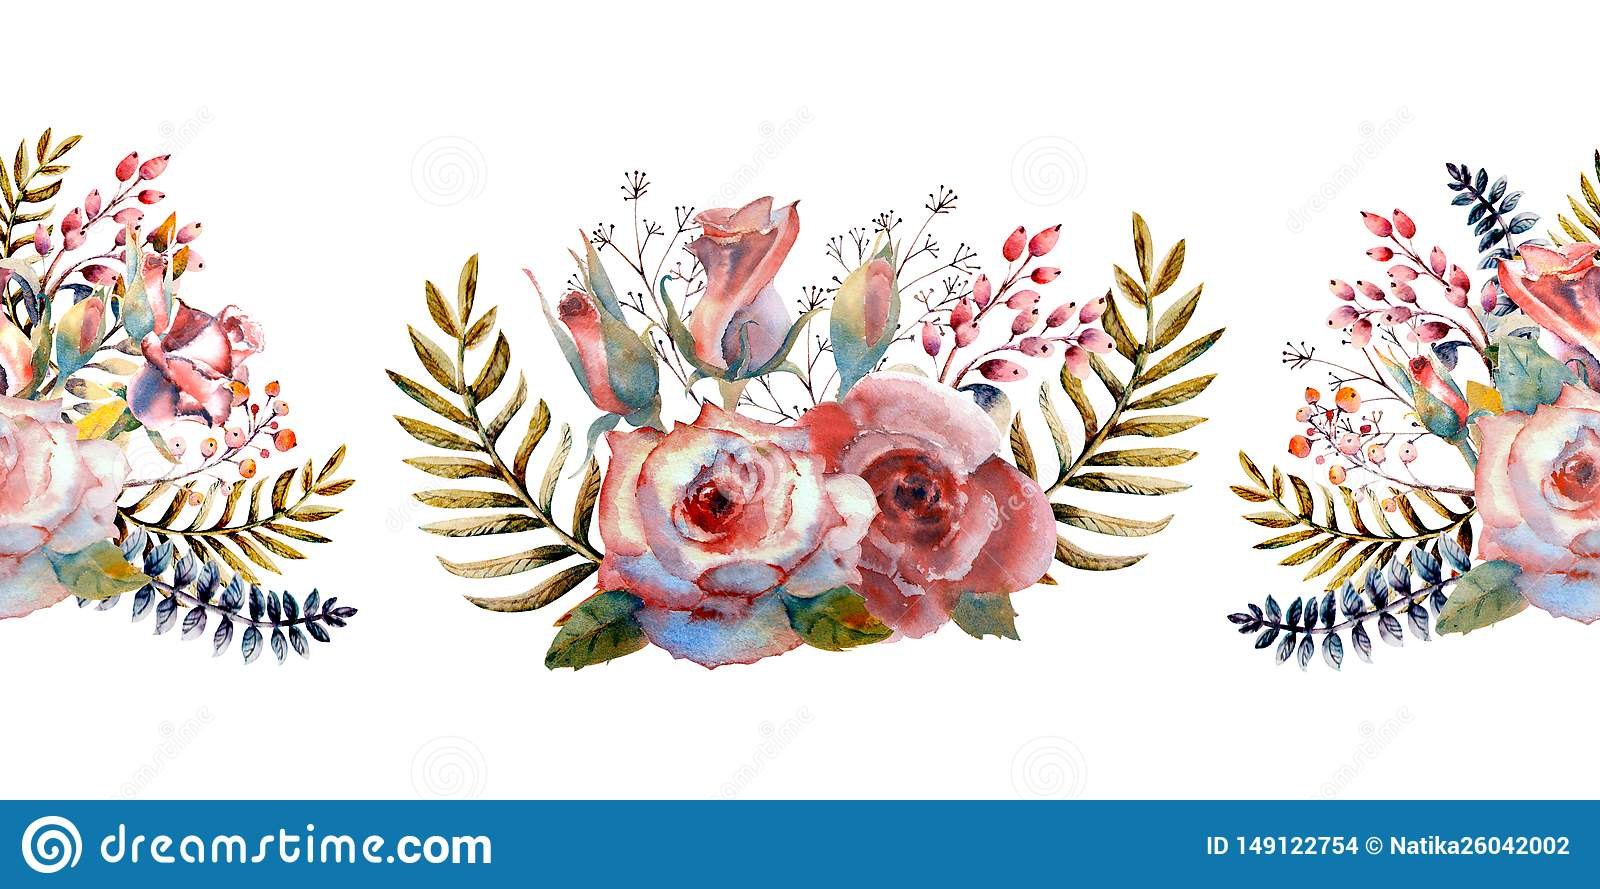 Pink roses, buds, leaves. Repeating summer horizontal border. Floral watercolor. Watercolor compositions for the design